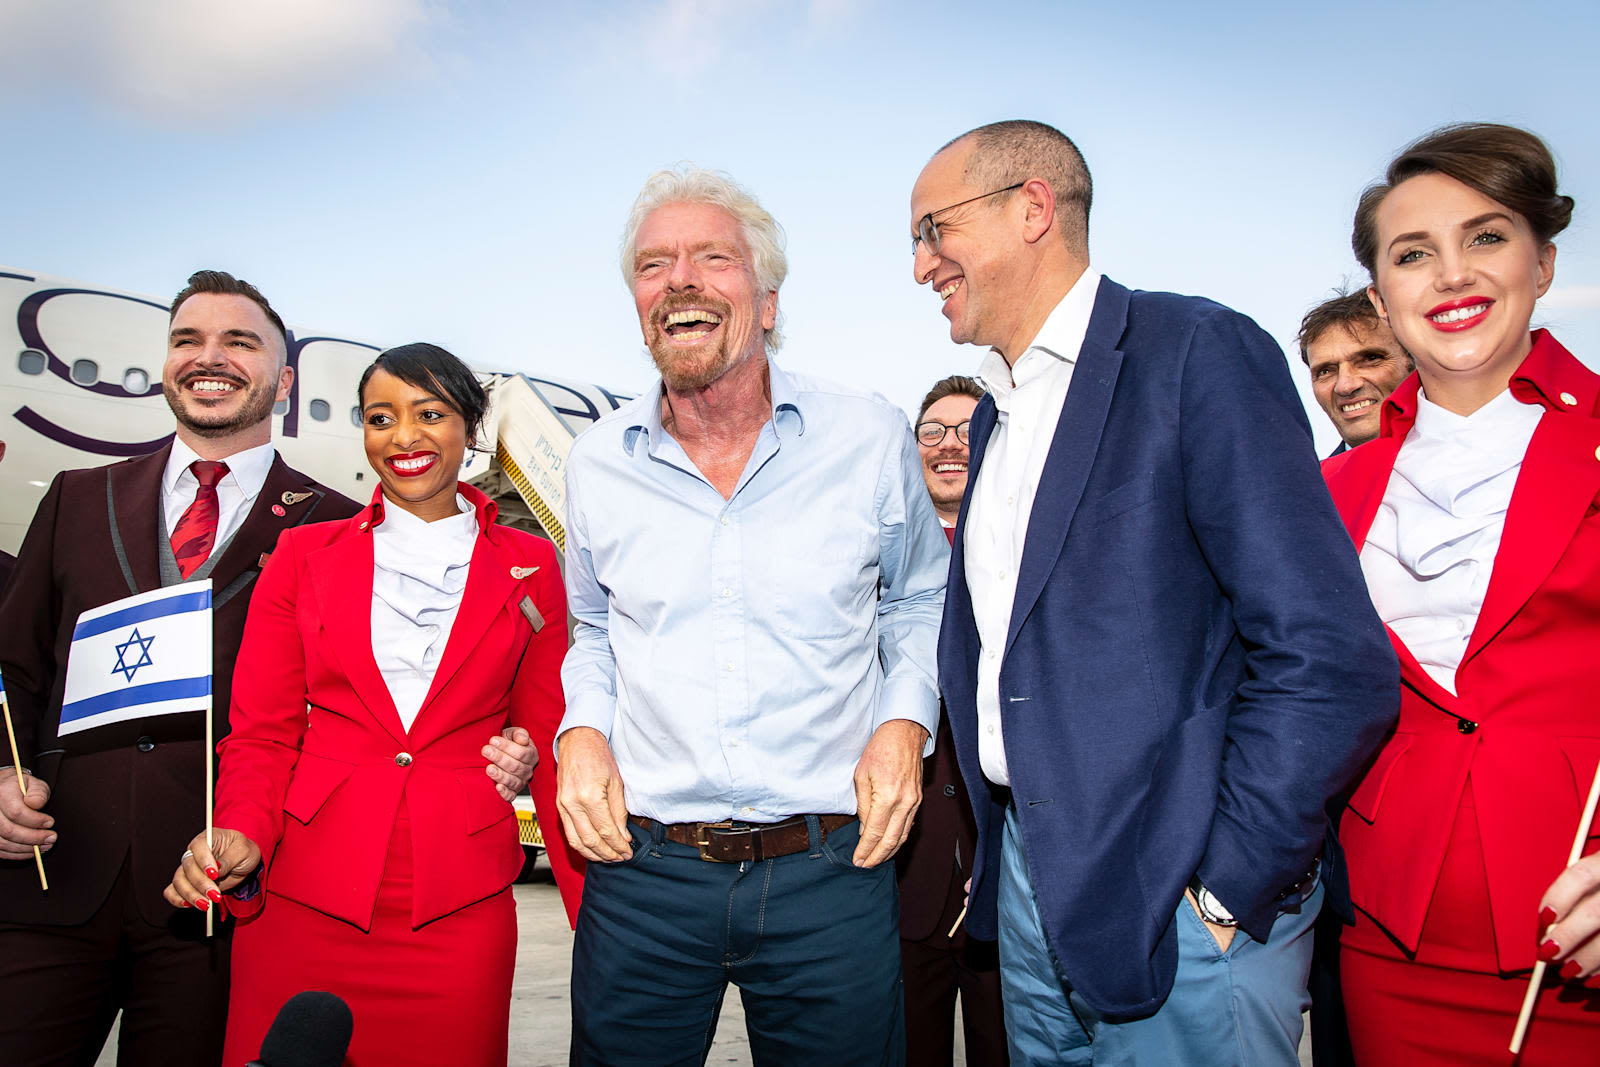 Richard Branson with Virgin Atlantic CEO Shai Weiss and Virgin Atlantic cabin crew celebrating the inaugural flight to Tel Aviv